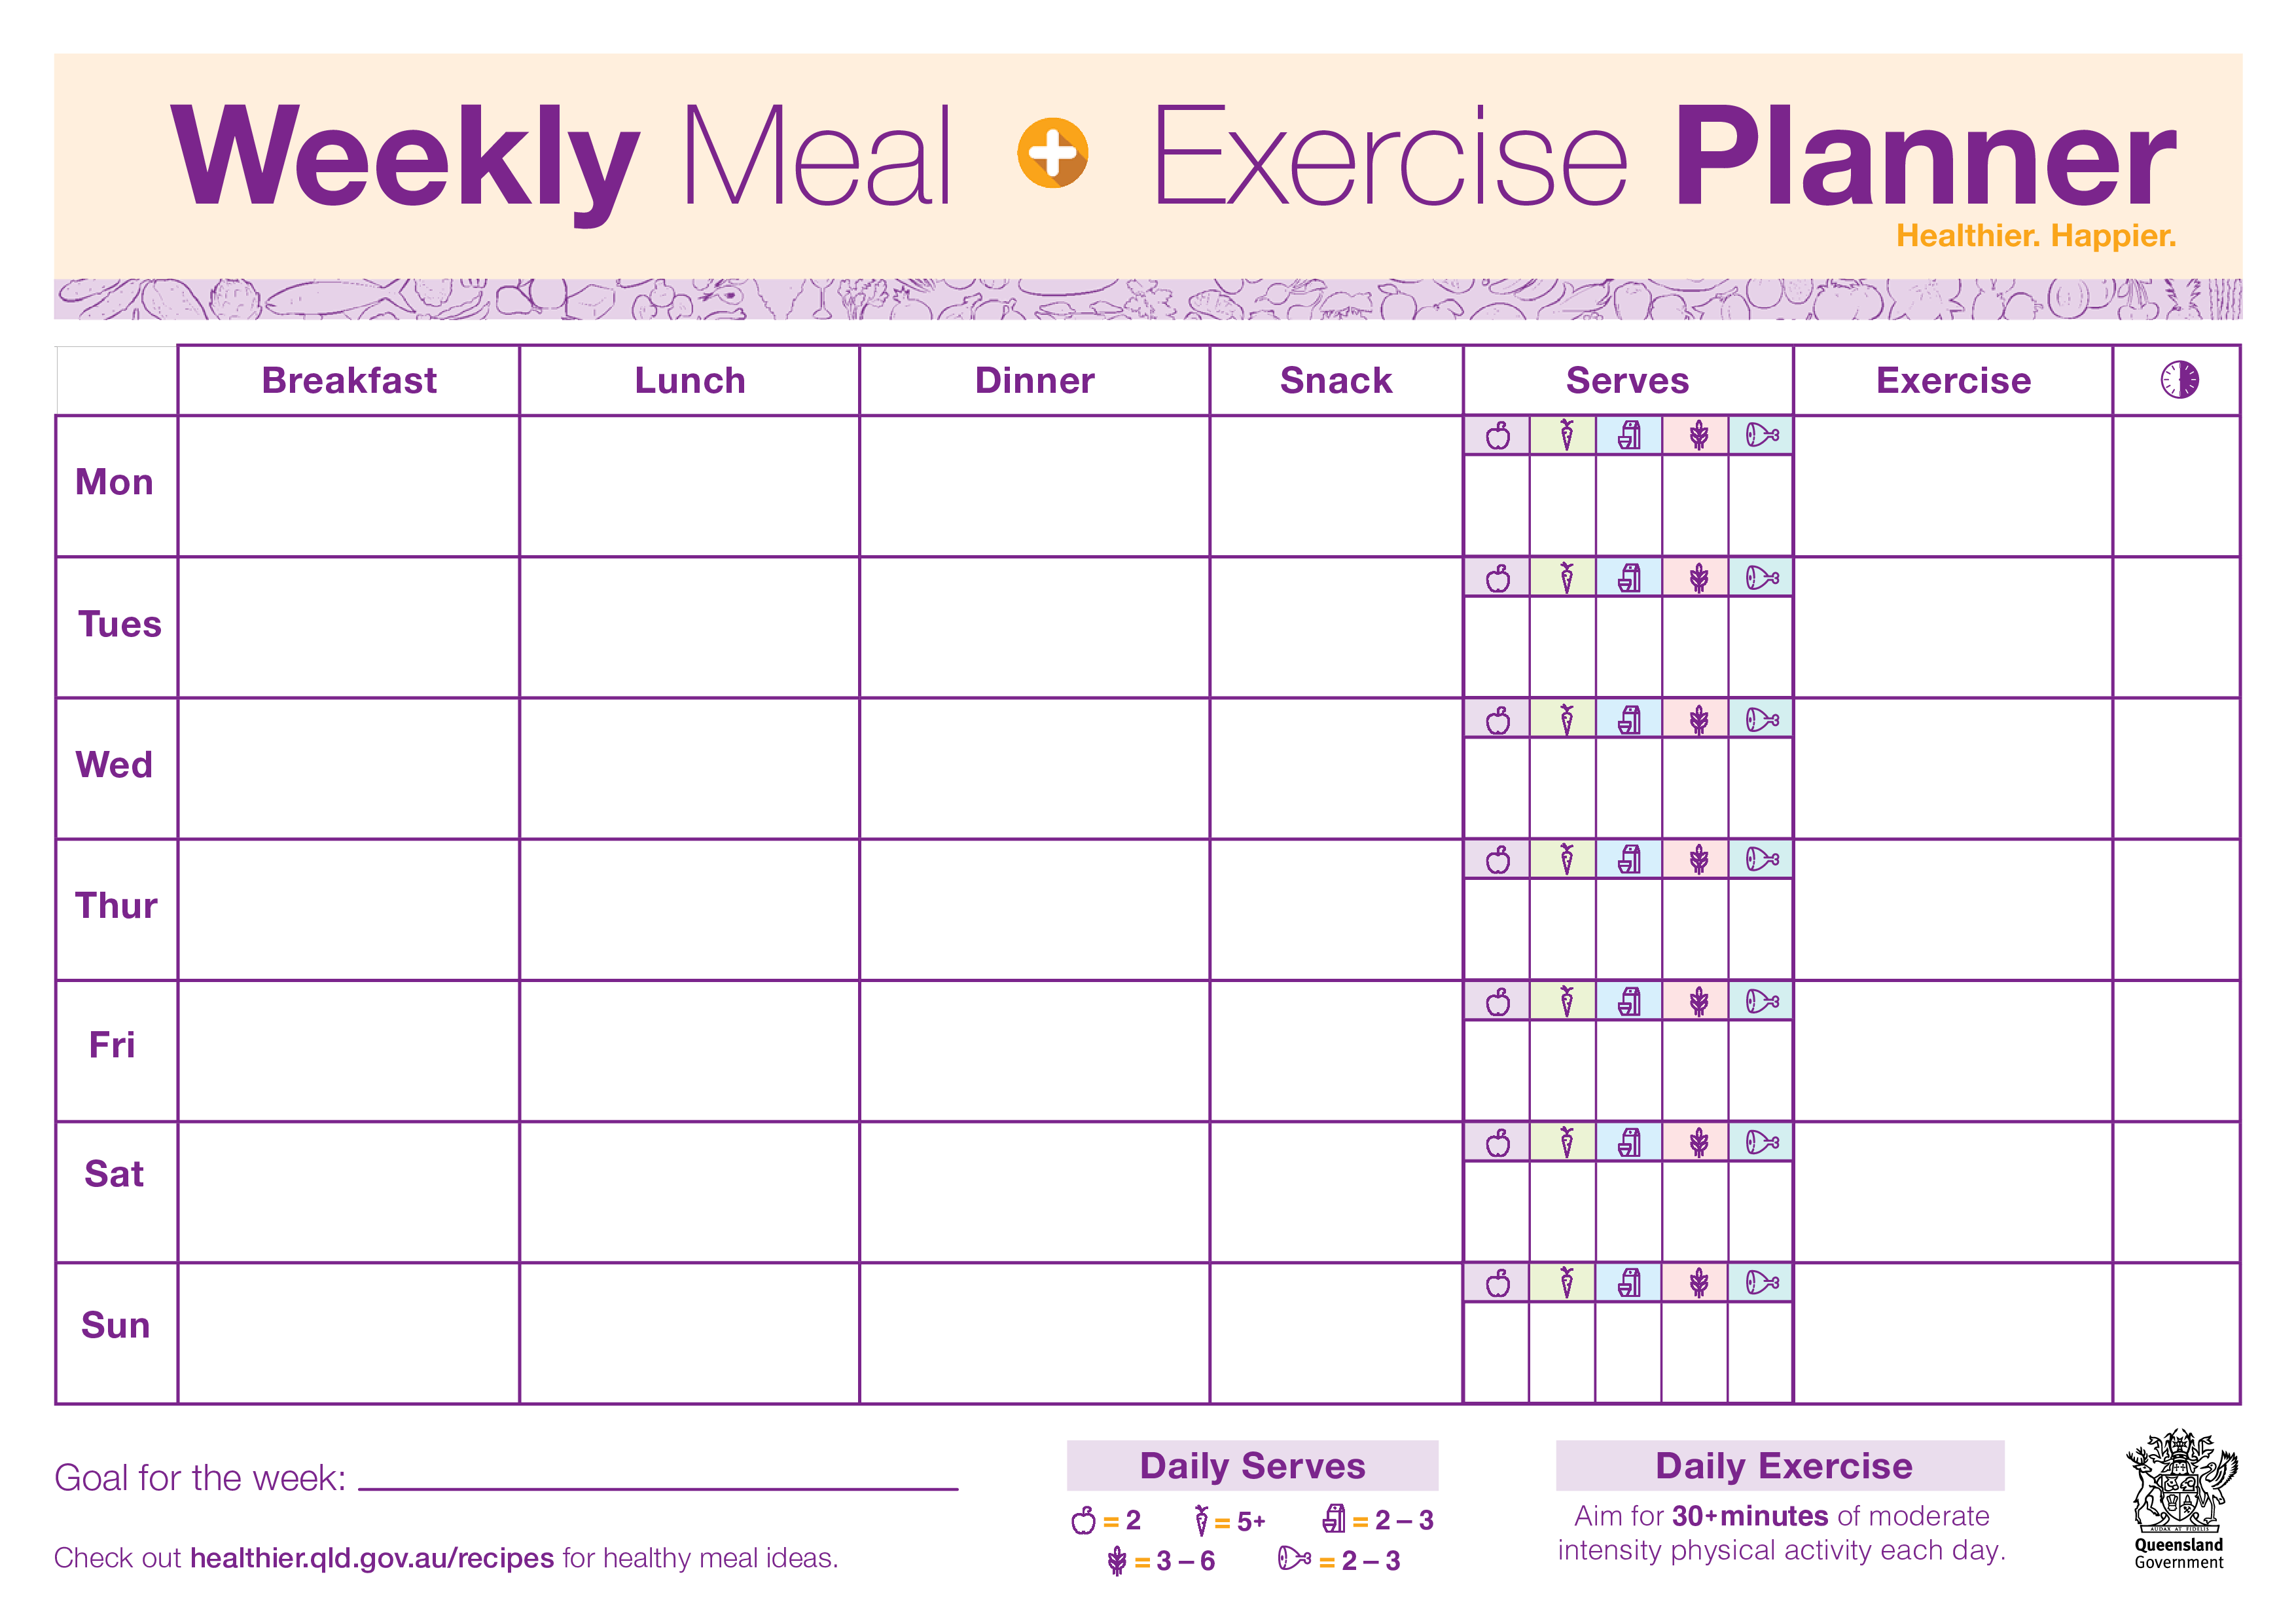 Weekly Meal Exercise Planner